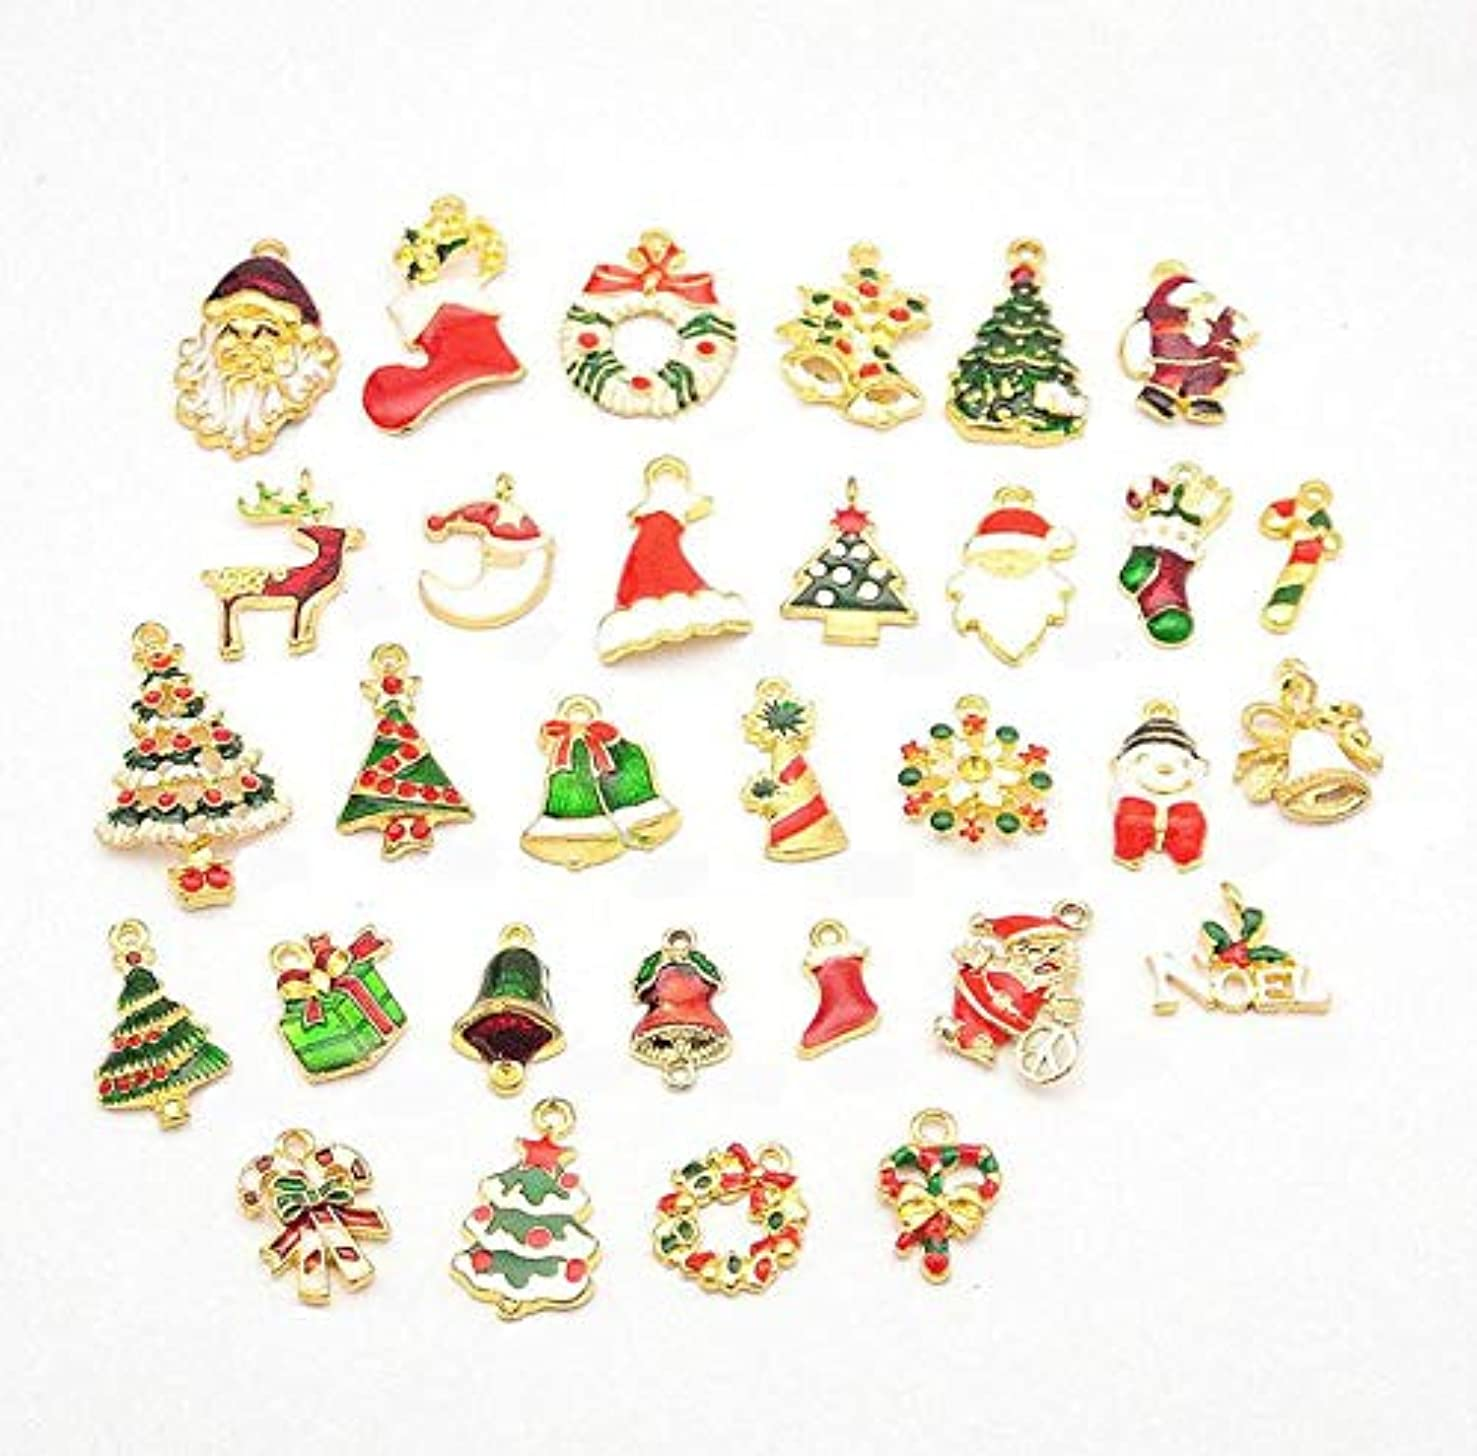 20pcs Mixed Style Fruit Christmas Charm Pendants for DIY Craft Making Jewelry Making Pendants (Style 1)